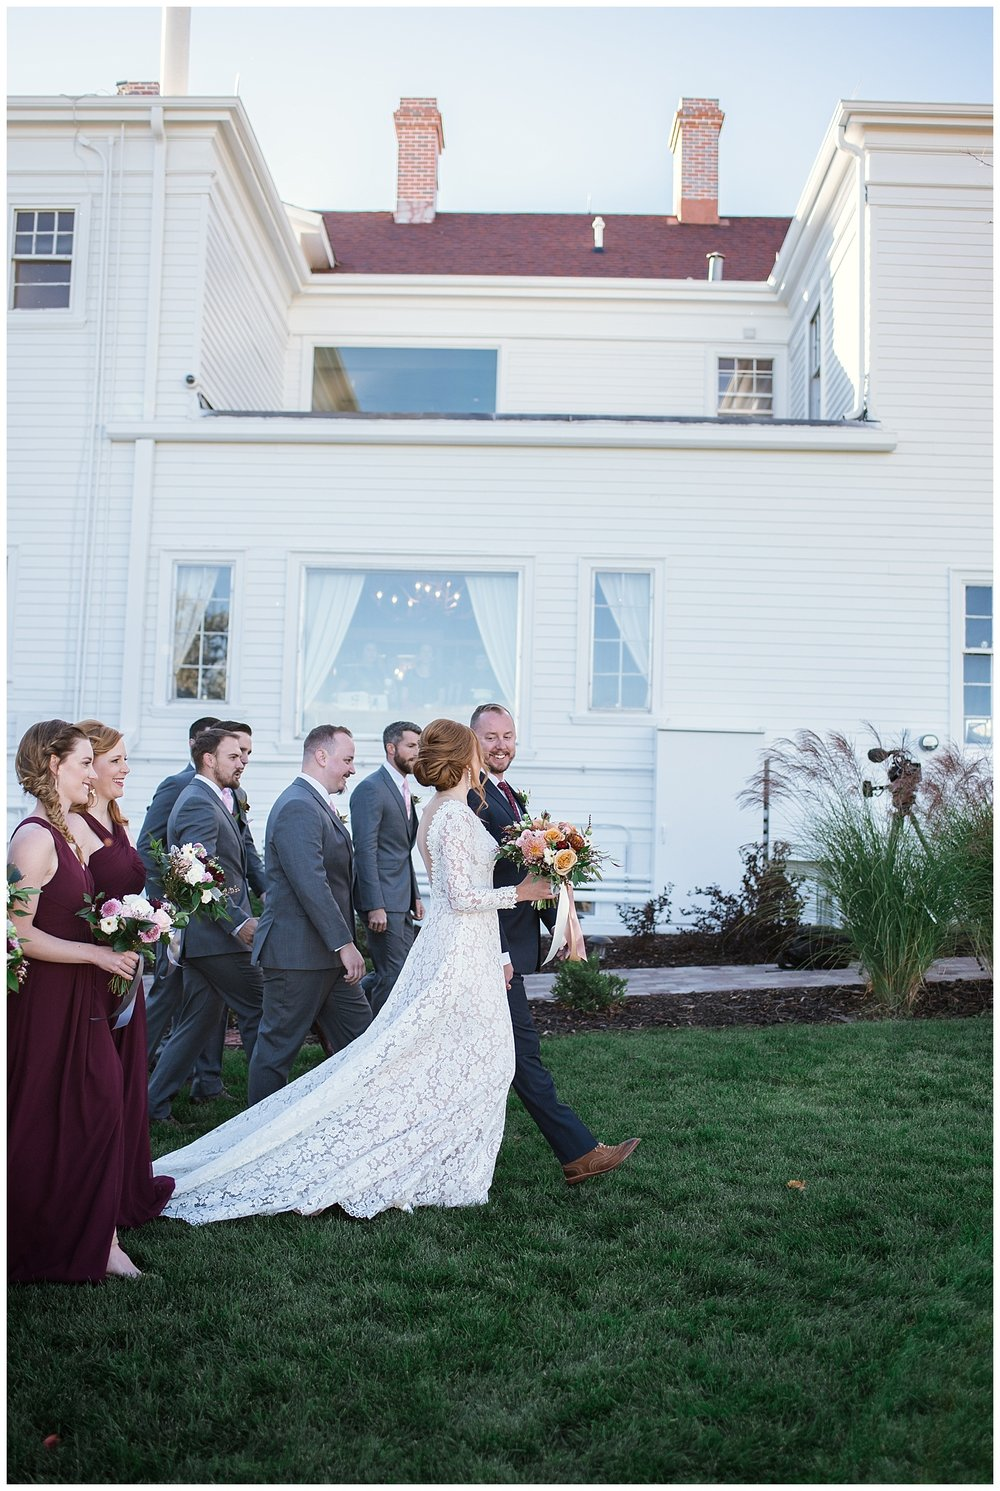 bridal party portraits at the historic Manor House, Rocky Mountain Wedding Photographer, Colorado Wedding Photographer, Denver Wedding Photographer, Colorado Intimate Elopement Photographer, Downtown Denver Photographer, Rocky Mountain Adventure Elopement,